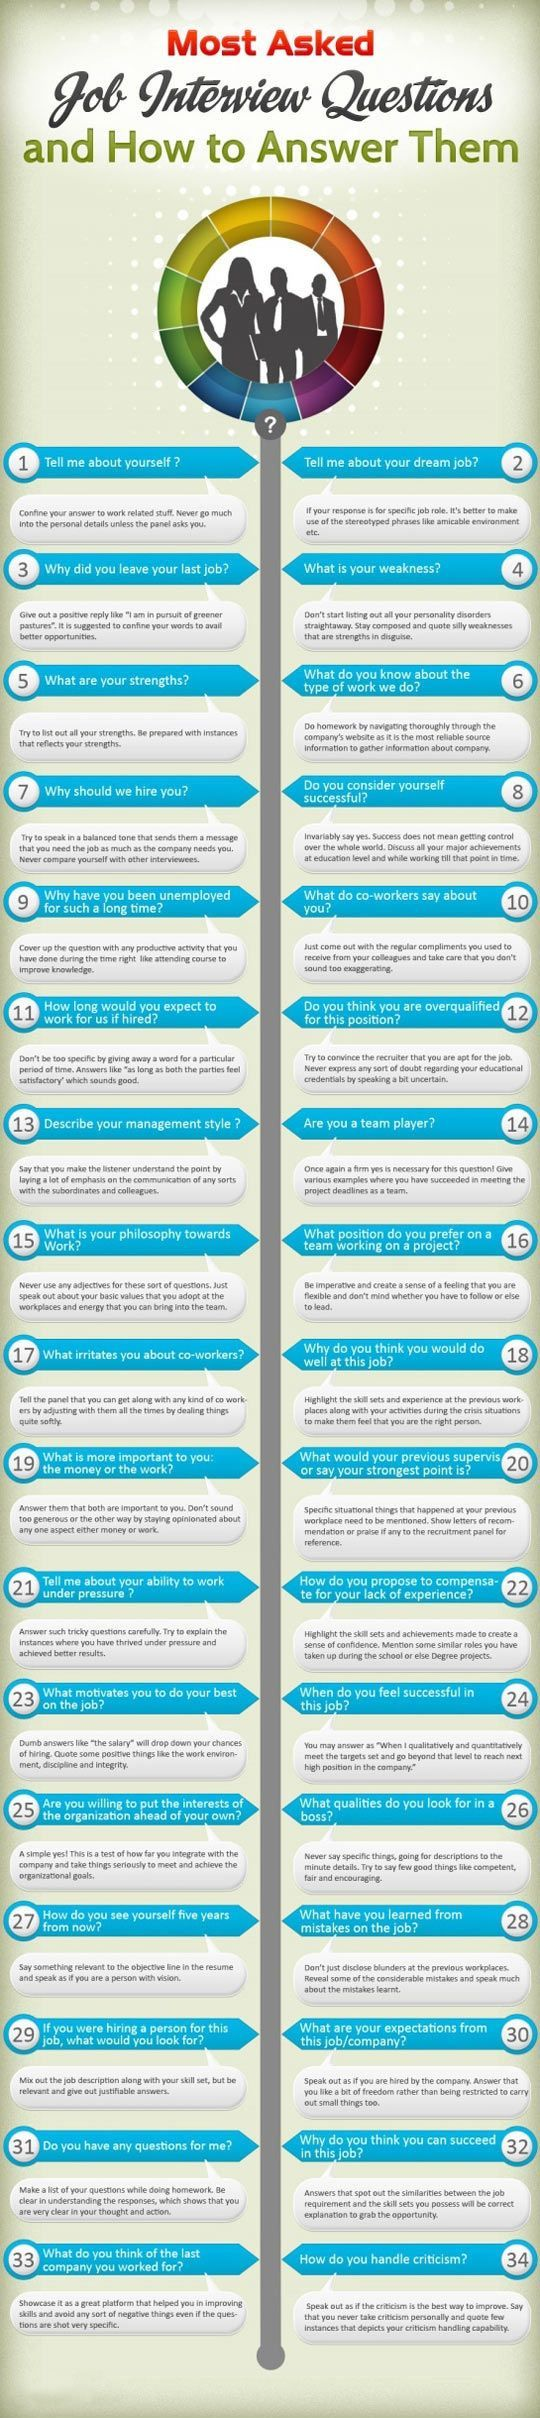 Most Asked Job Interview Questions... So True!